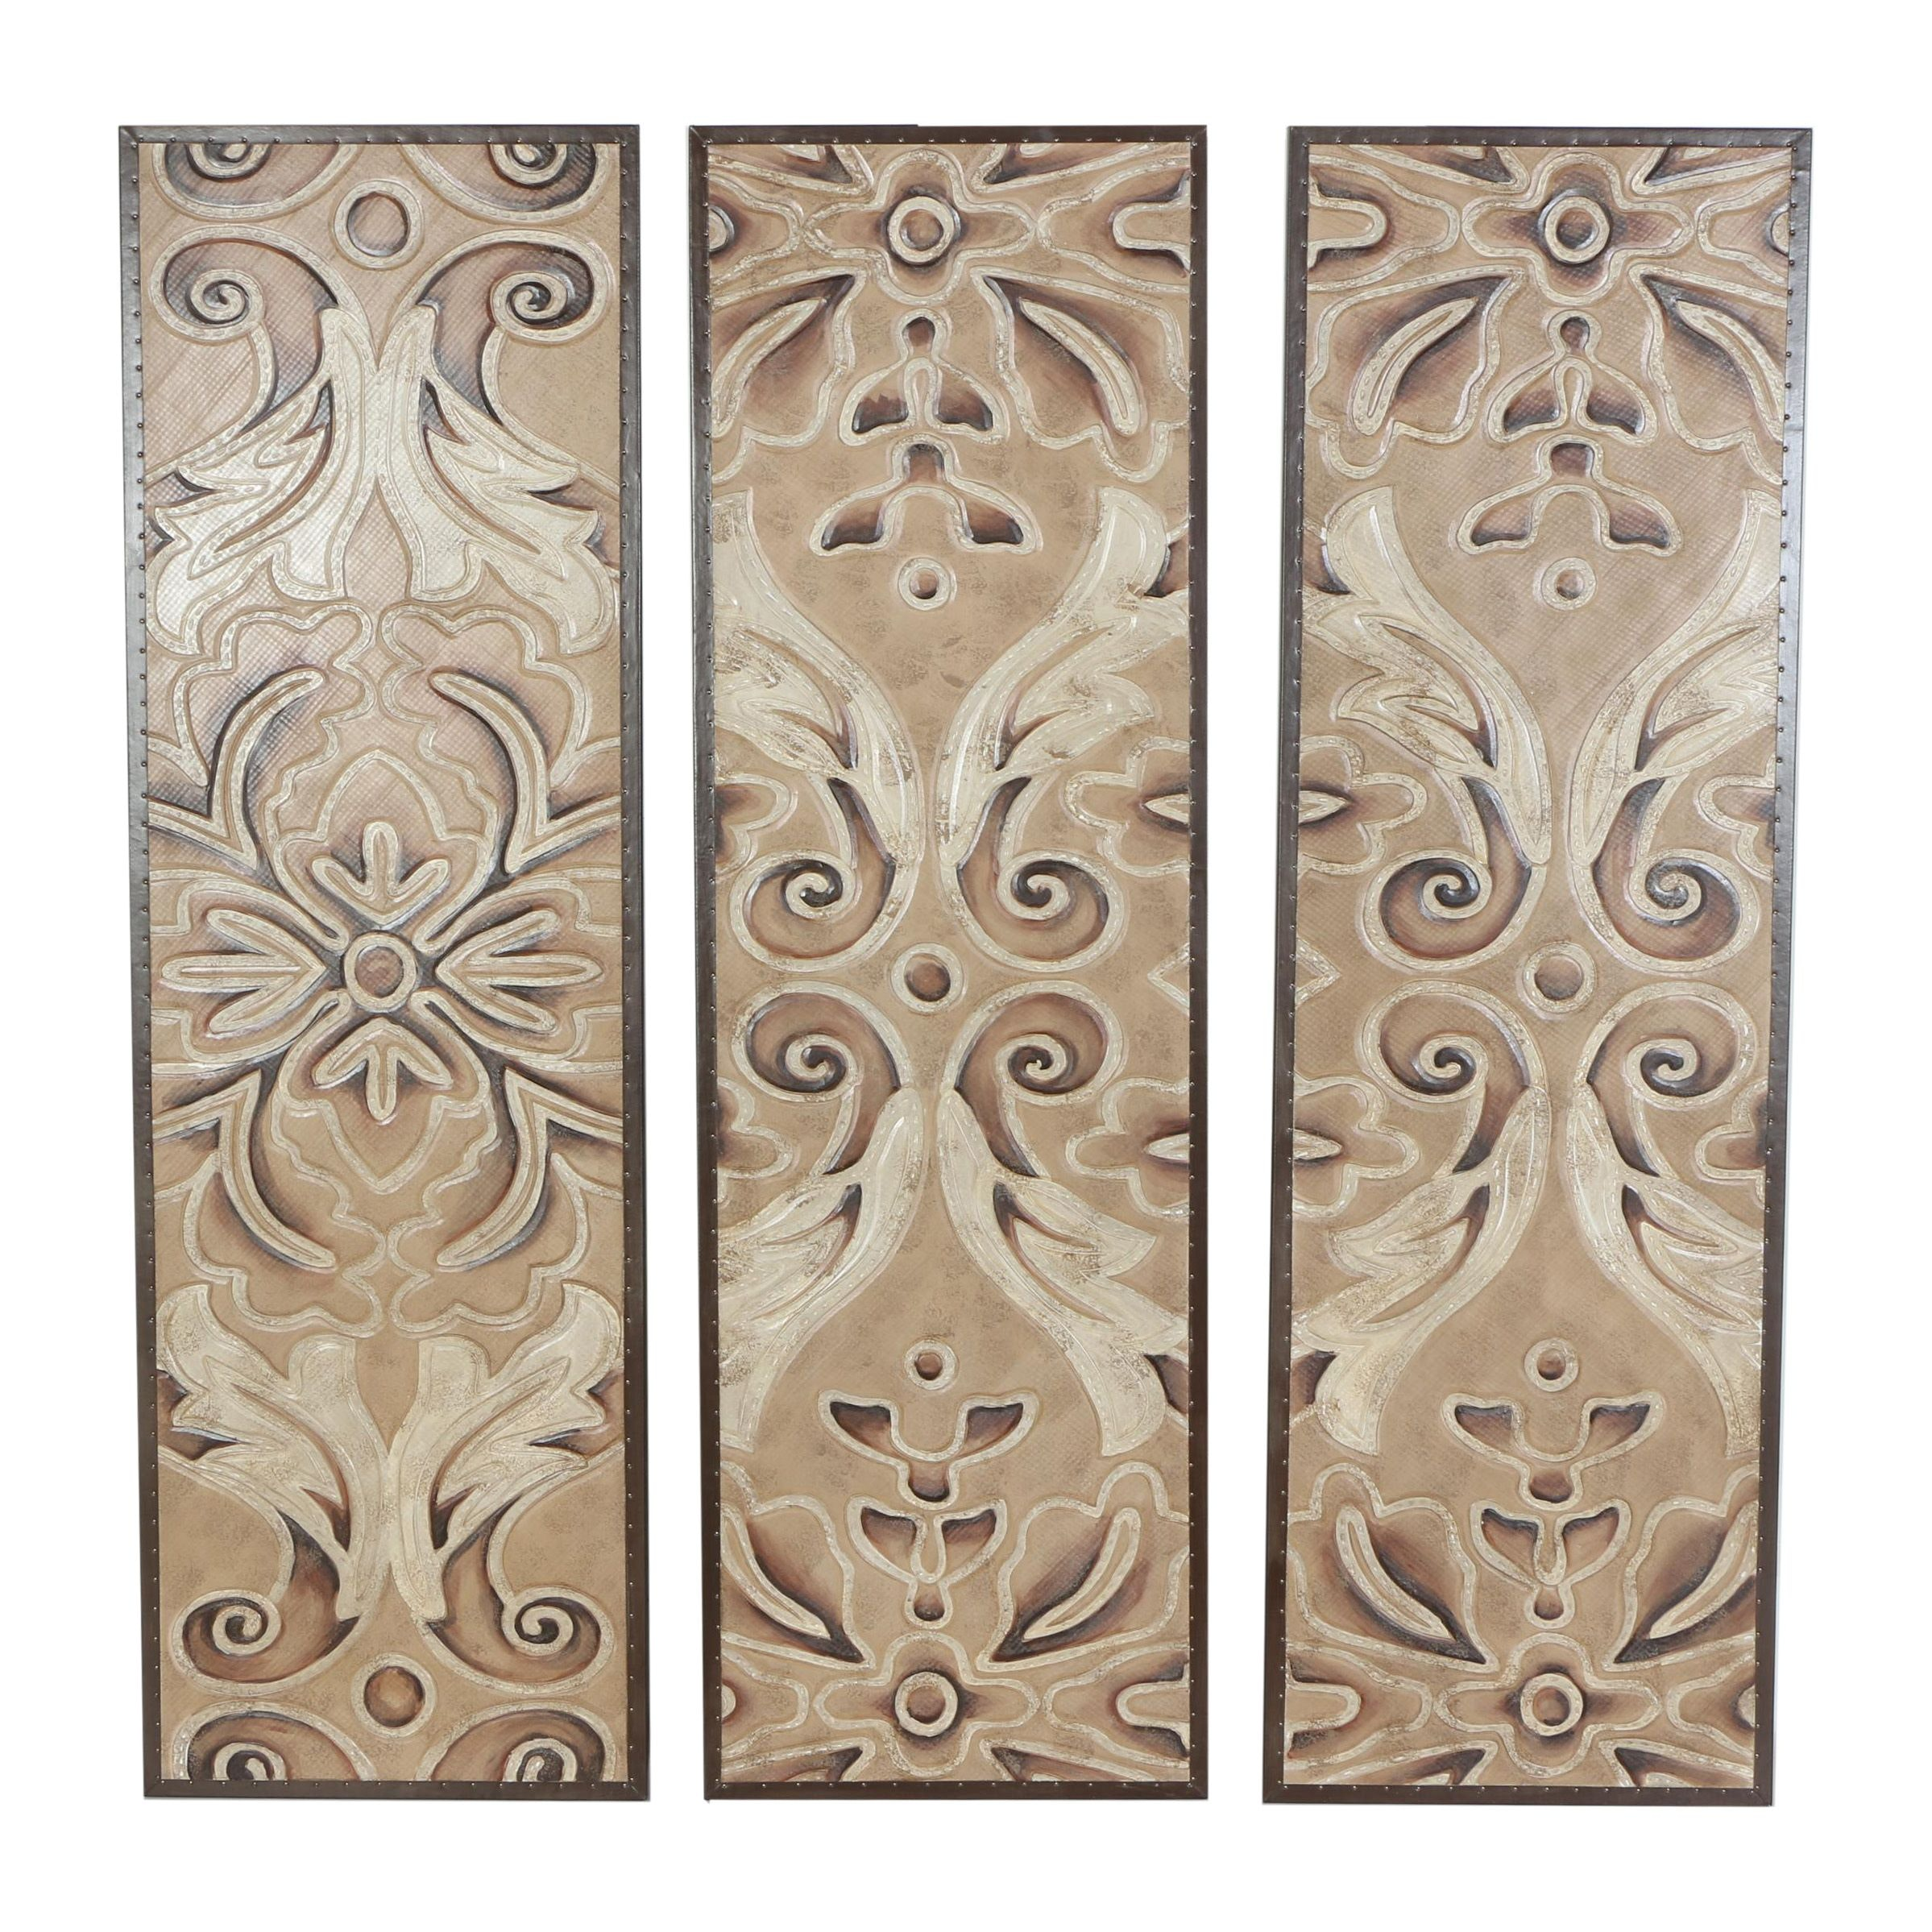 Painted Carved Wood Panels